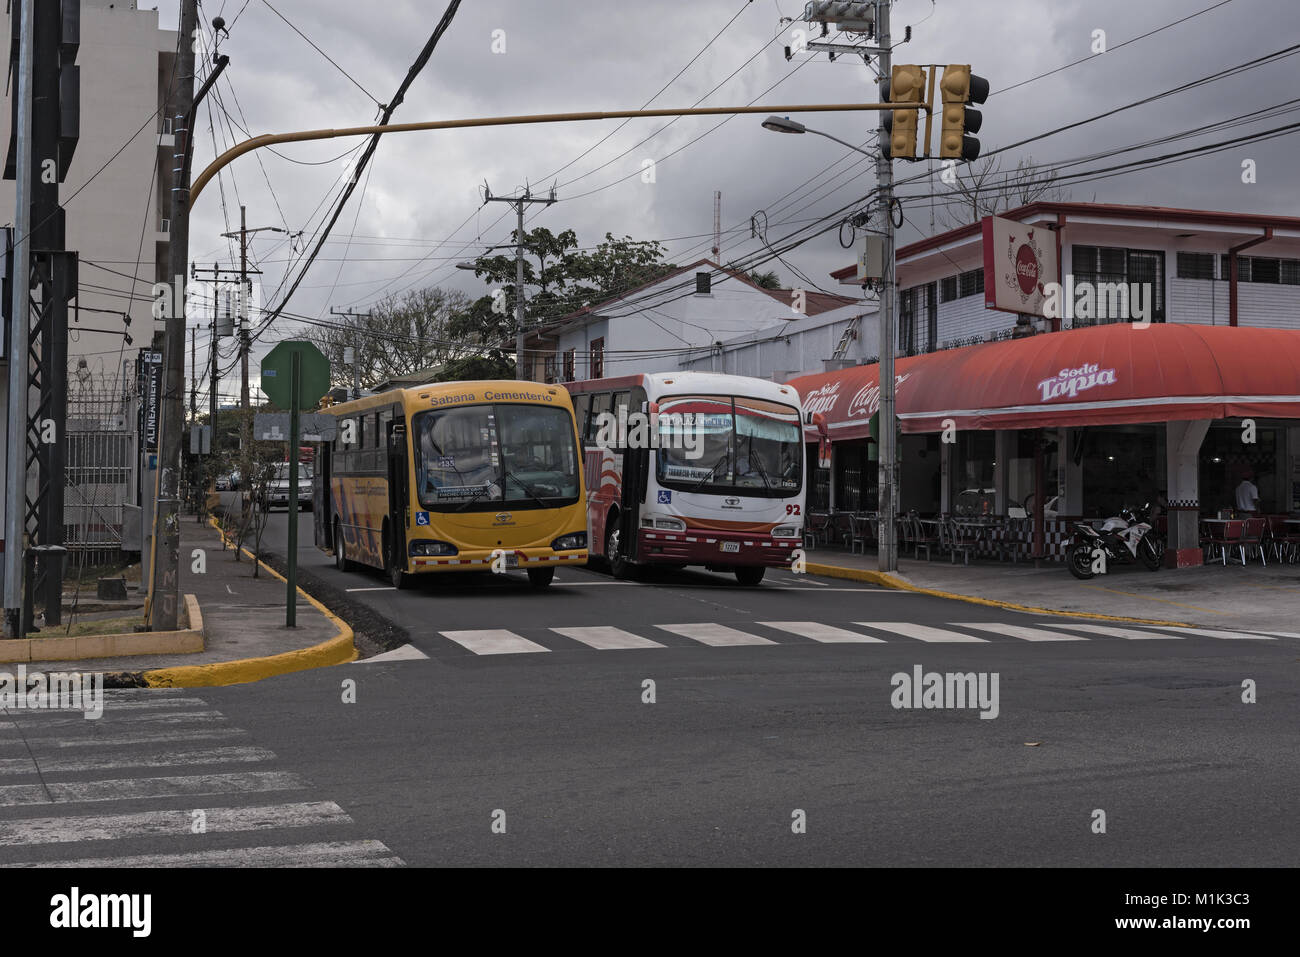 Two buses on a street in San Jose, the capital of Costa Rica - Stock Image